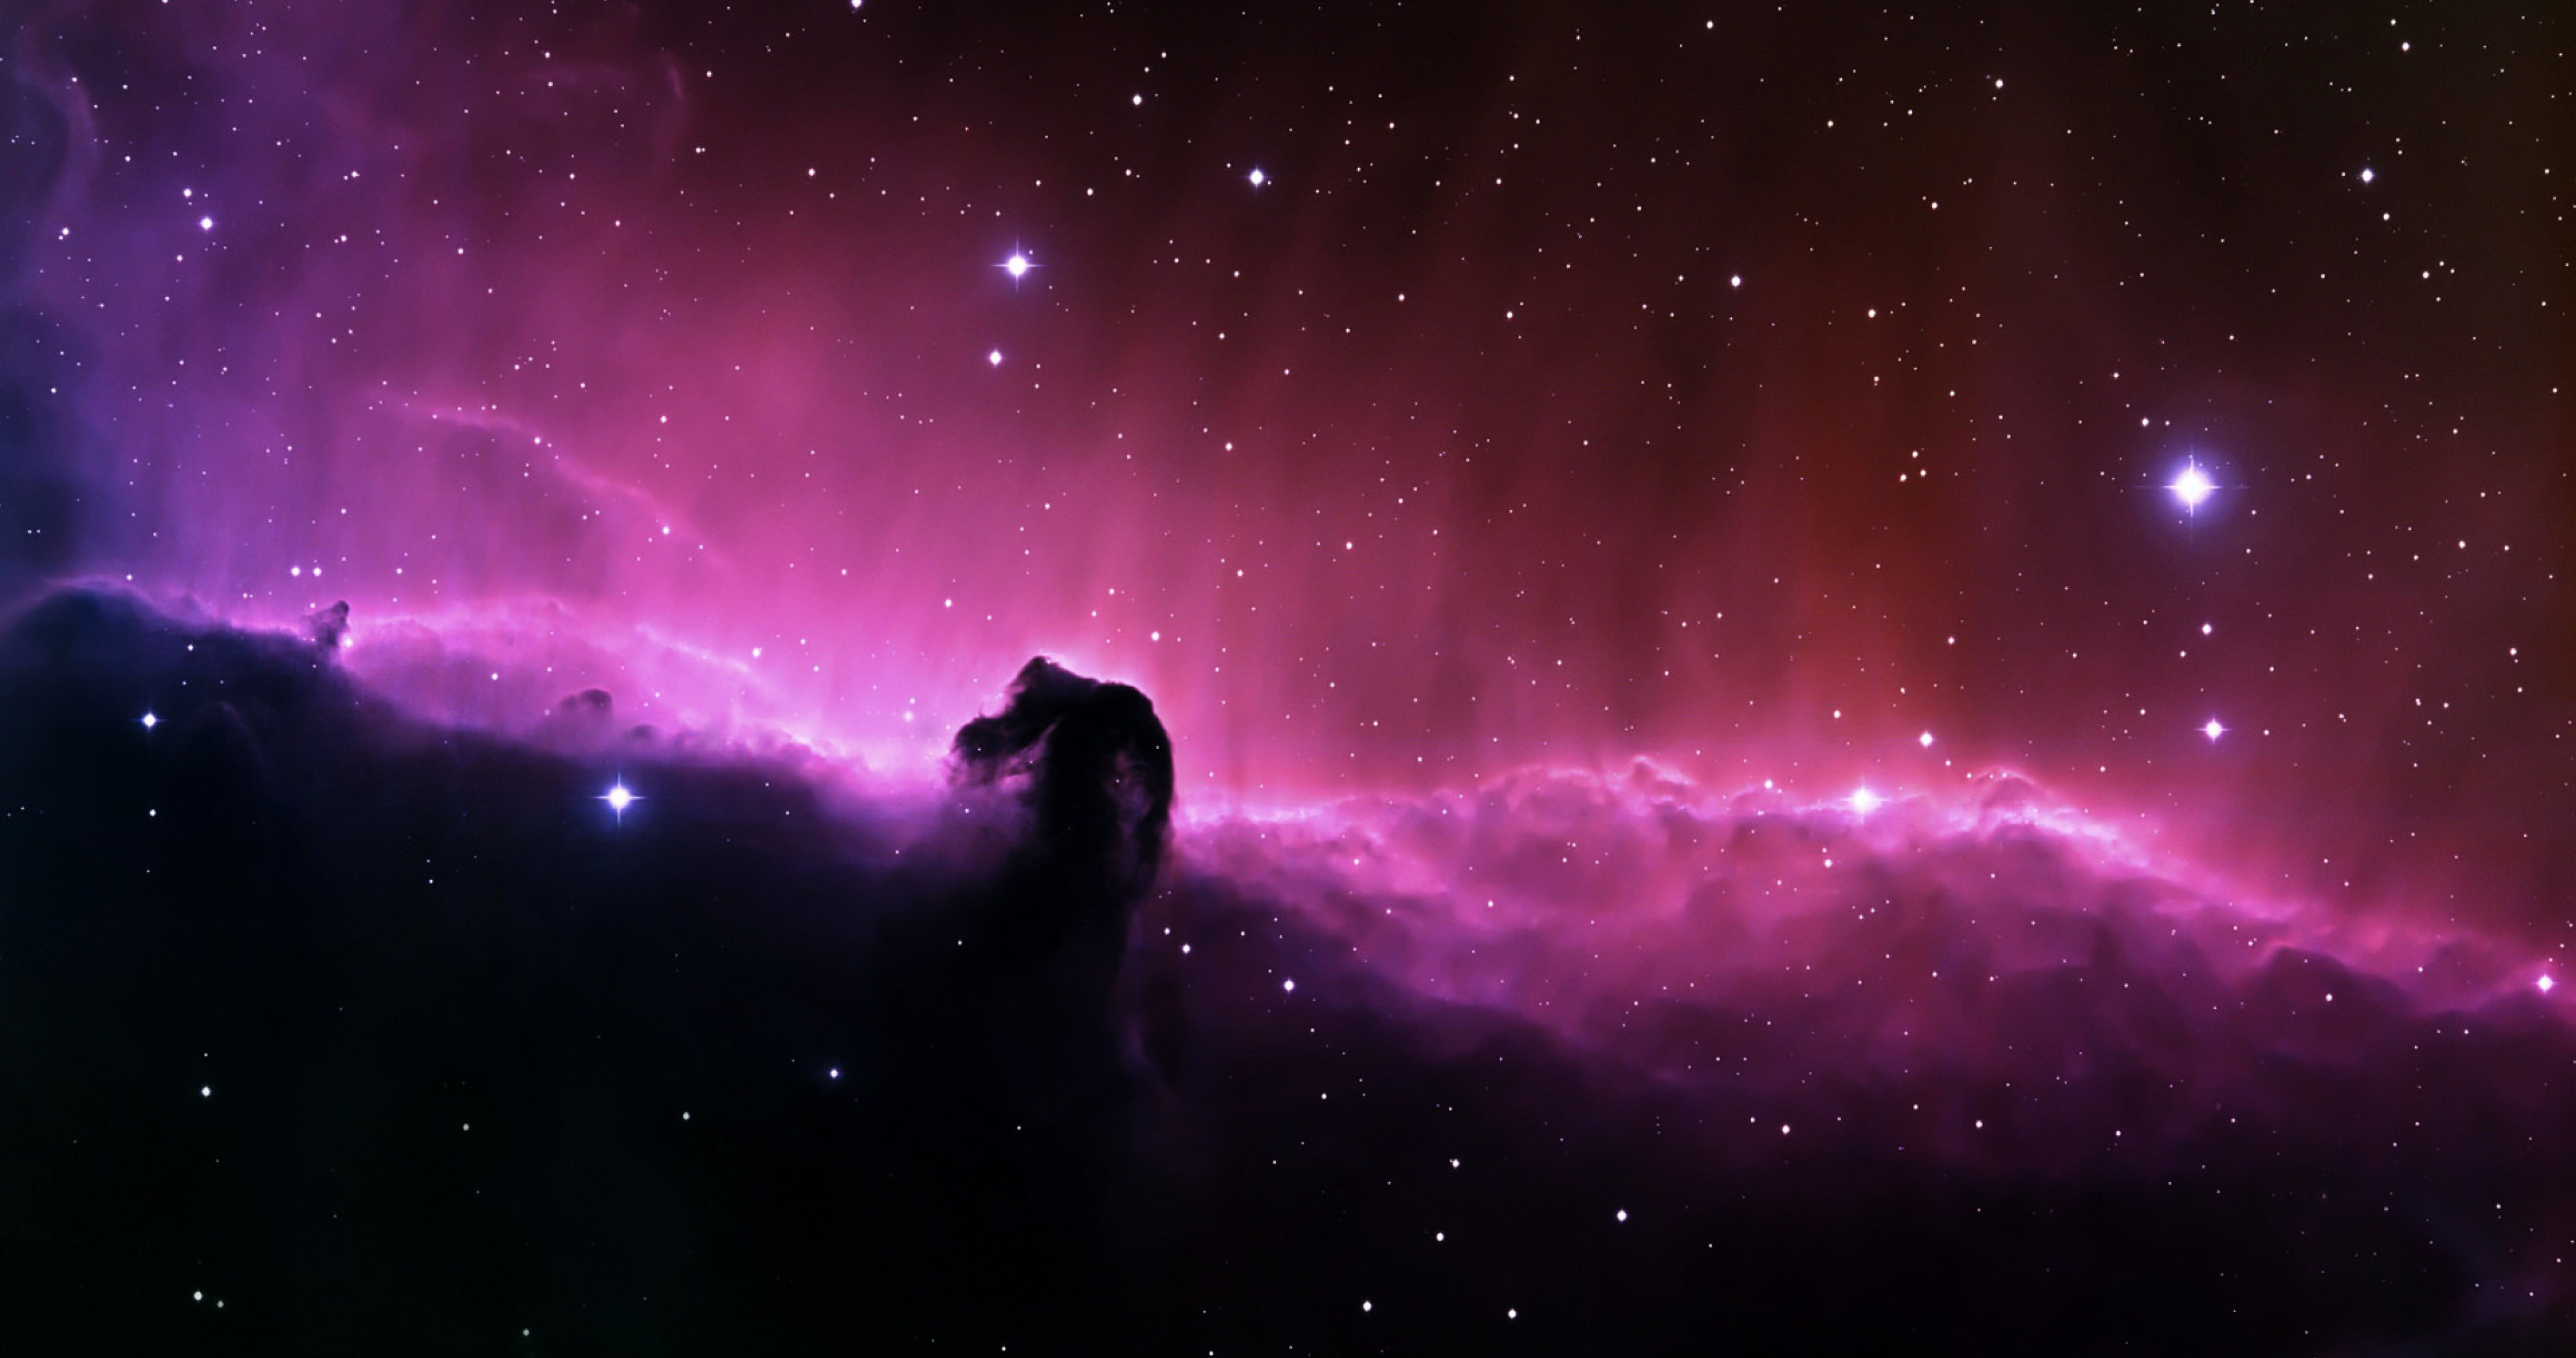 70614 space nebula milky way 4k ultra hd wallpaper  space and